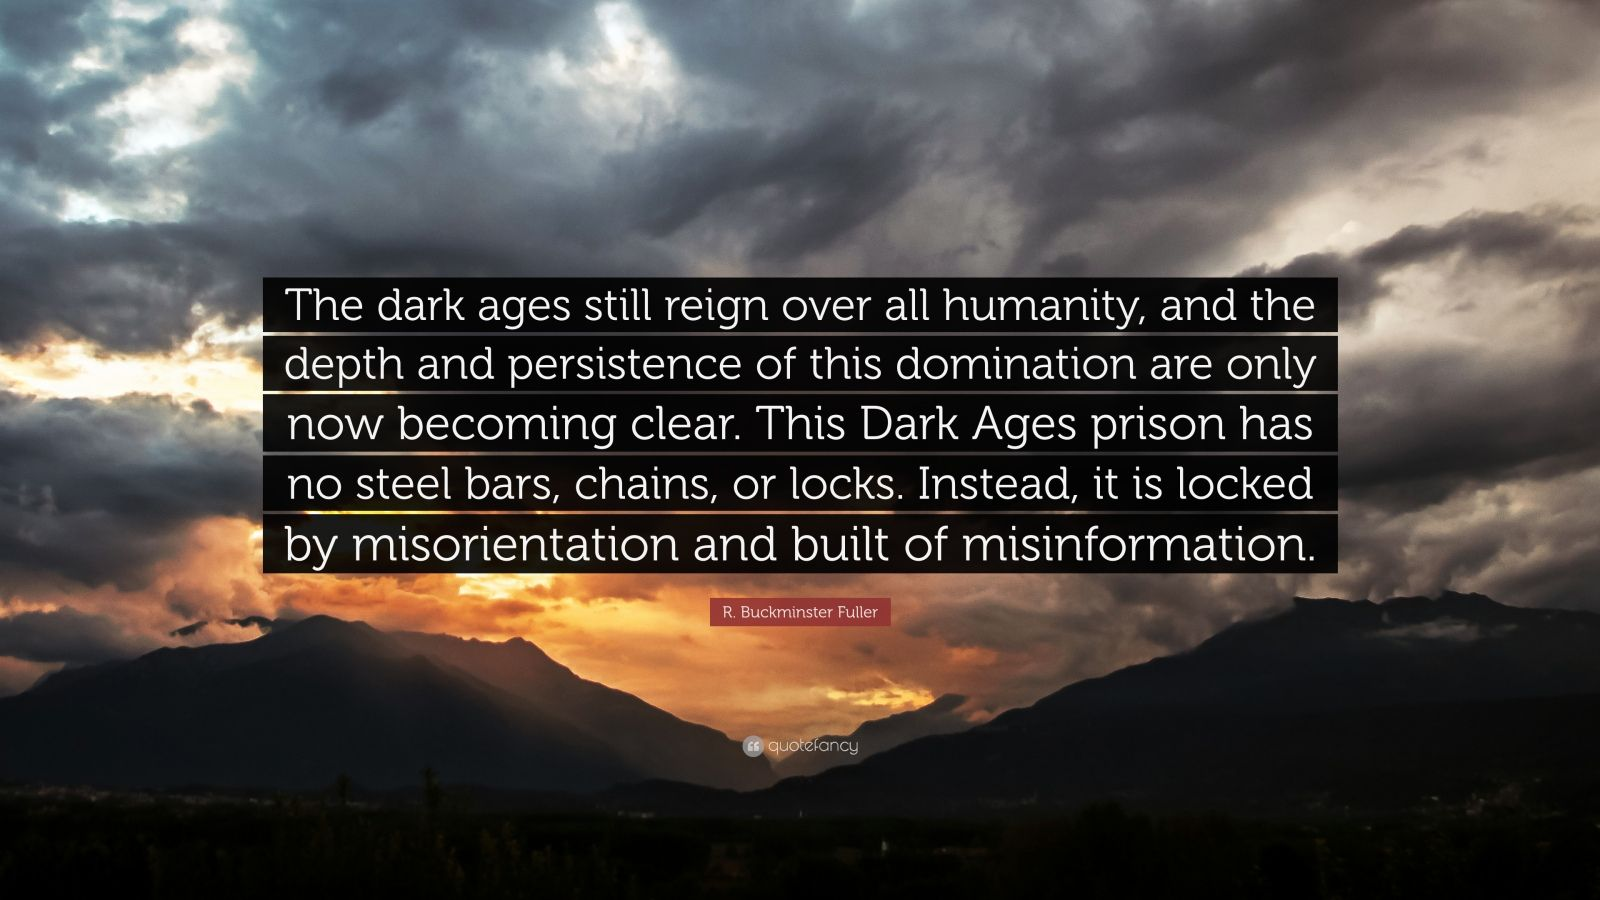 """R. Buckminster Fuller Quote: """"The dark ages still reign over all humanity, and the depth and persistence of this domination are only now becoming clear. This Dark Ages prison has no steel bars, chains, or locks. Instead, it is locked by misorientation and built of misinformation."""""""